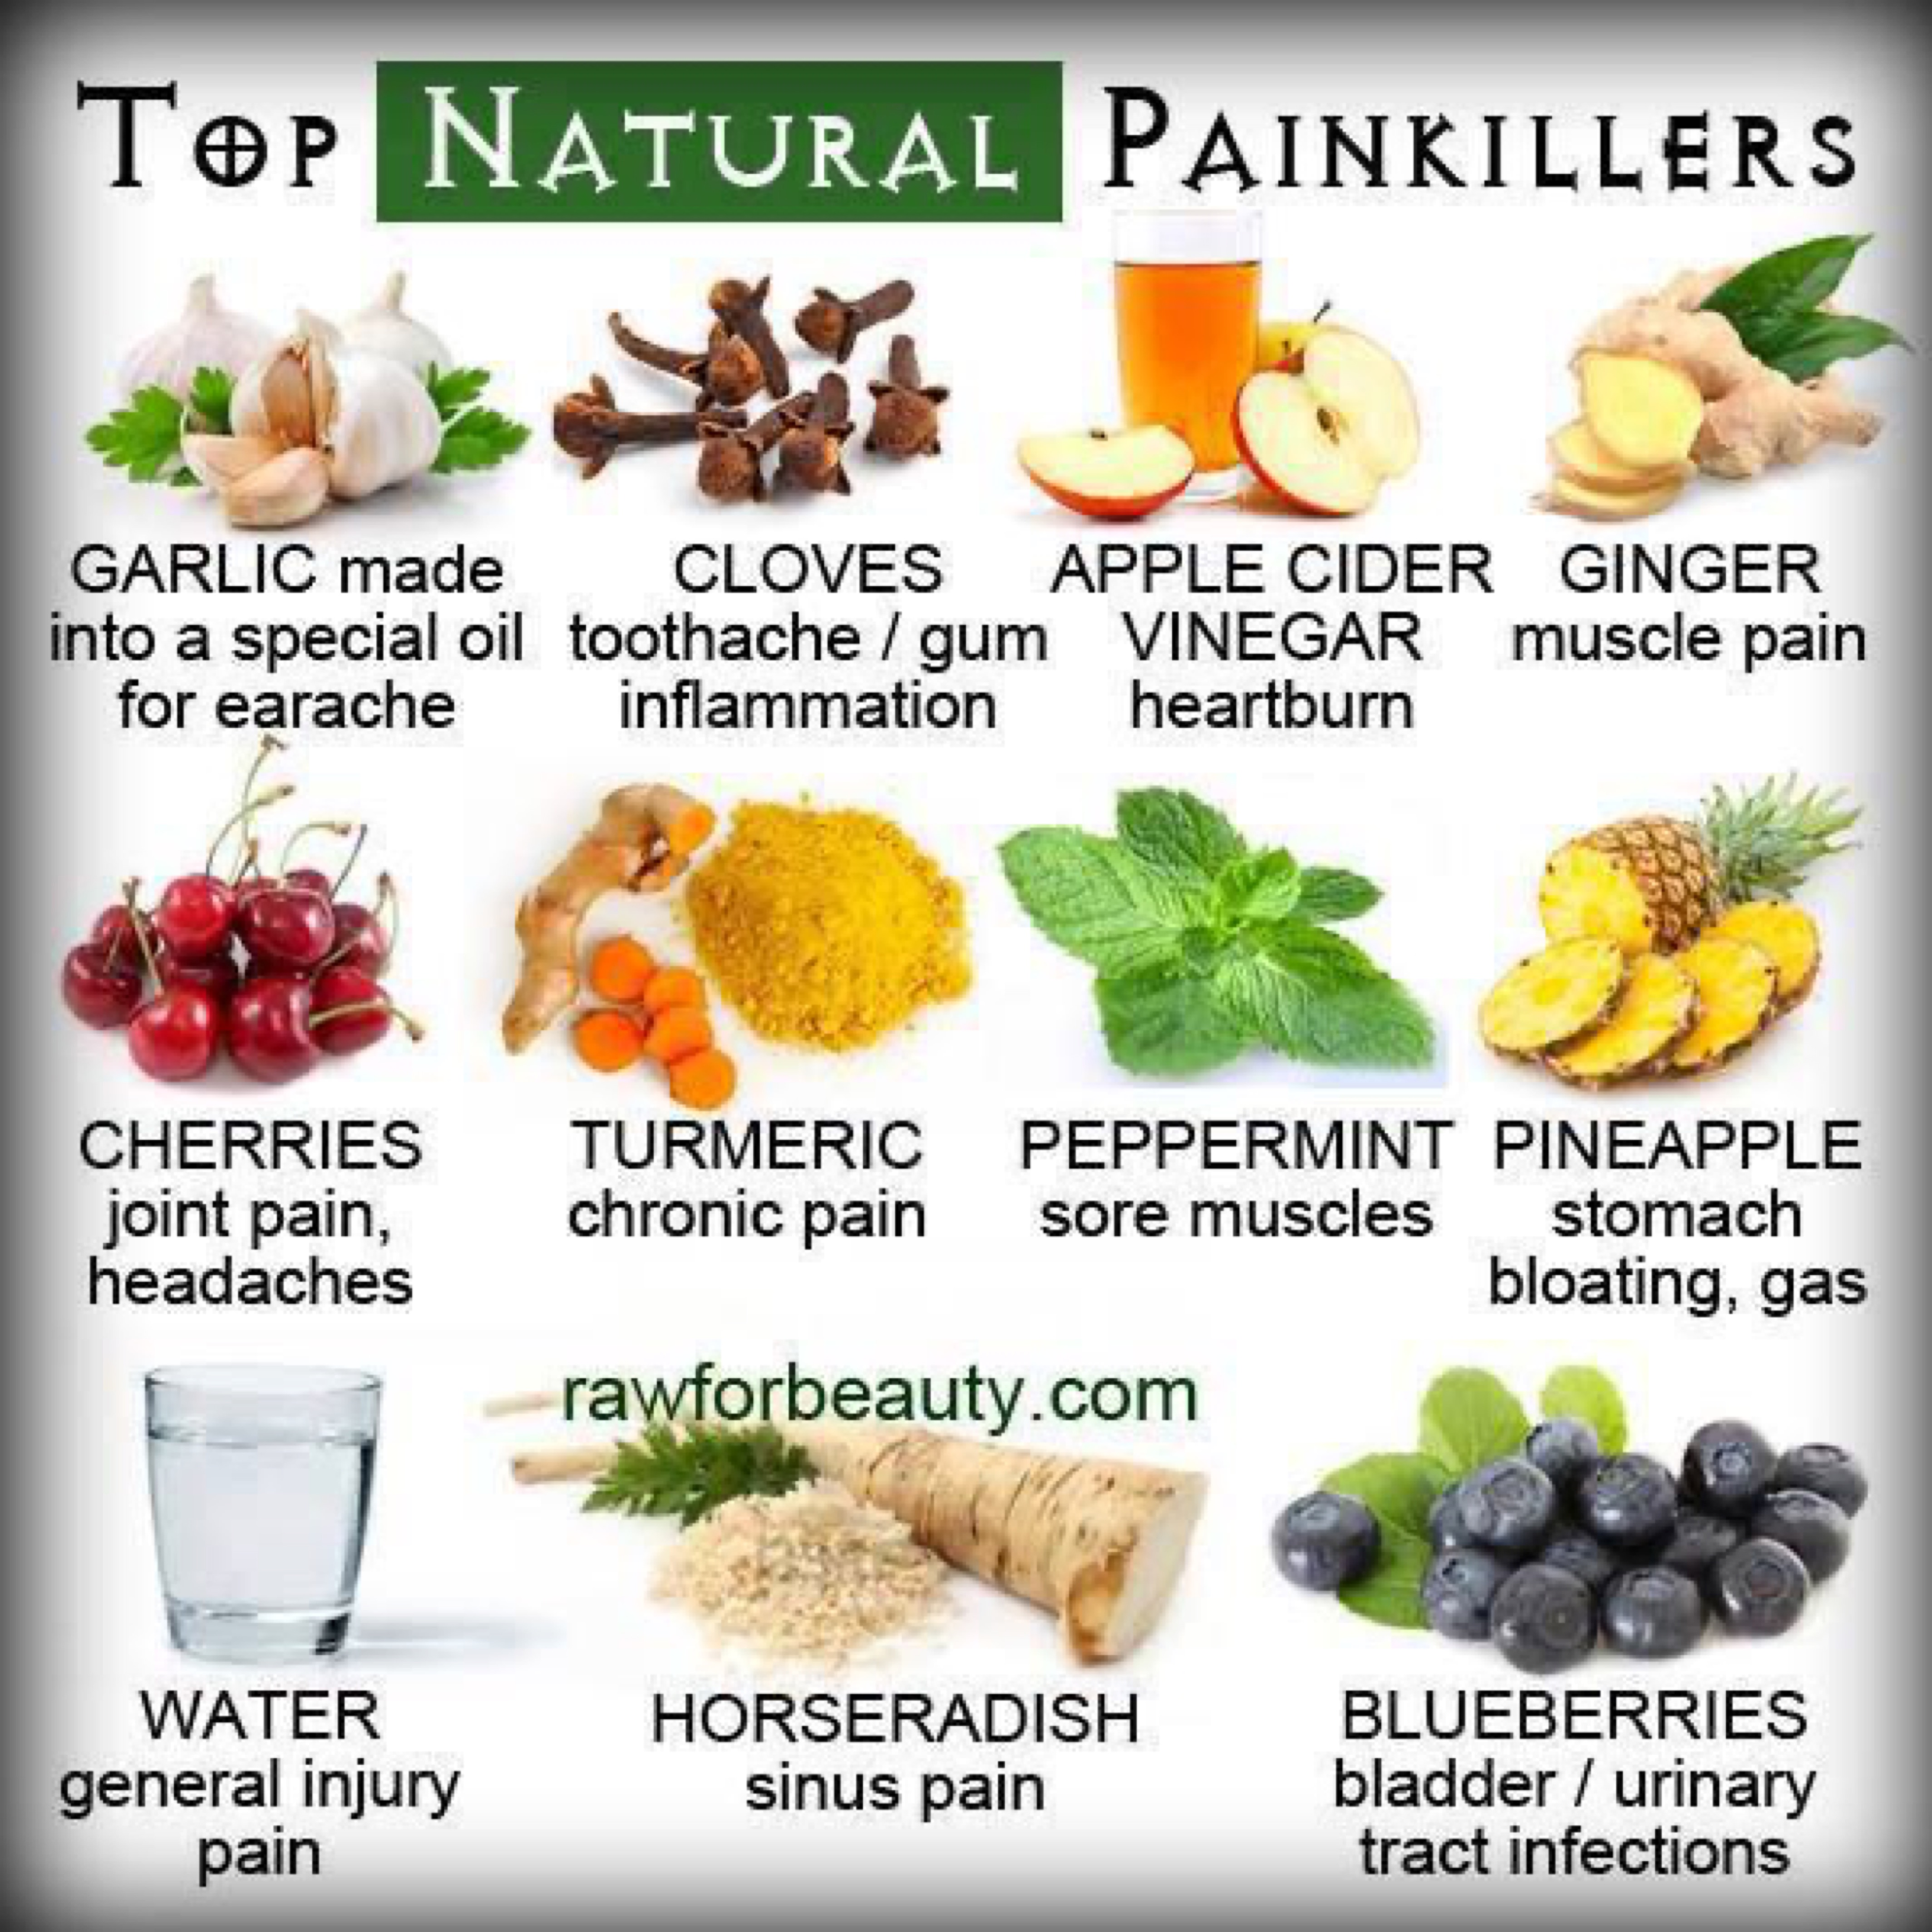 amoils - natural painkillers